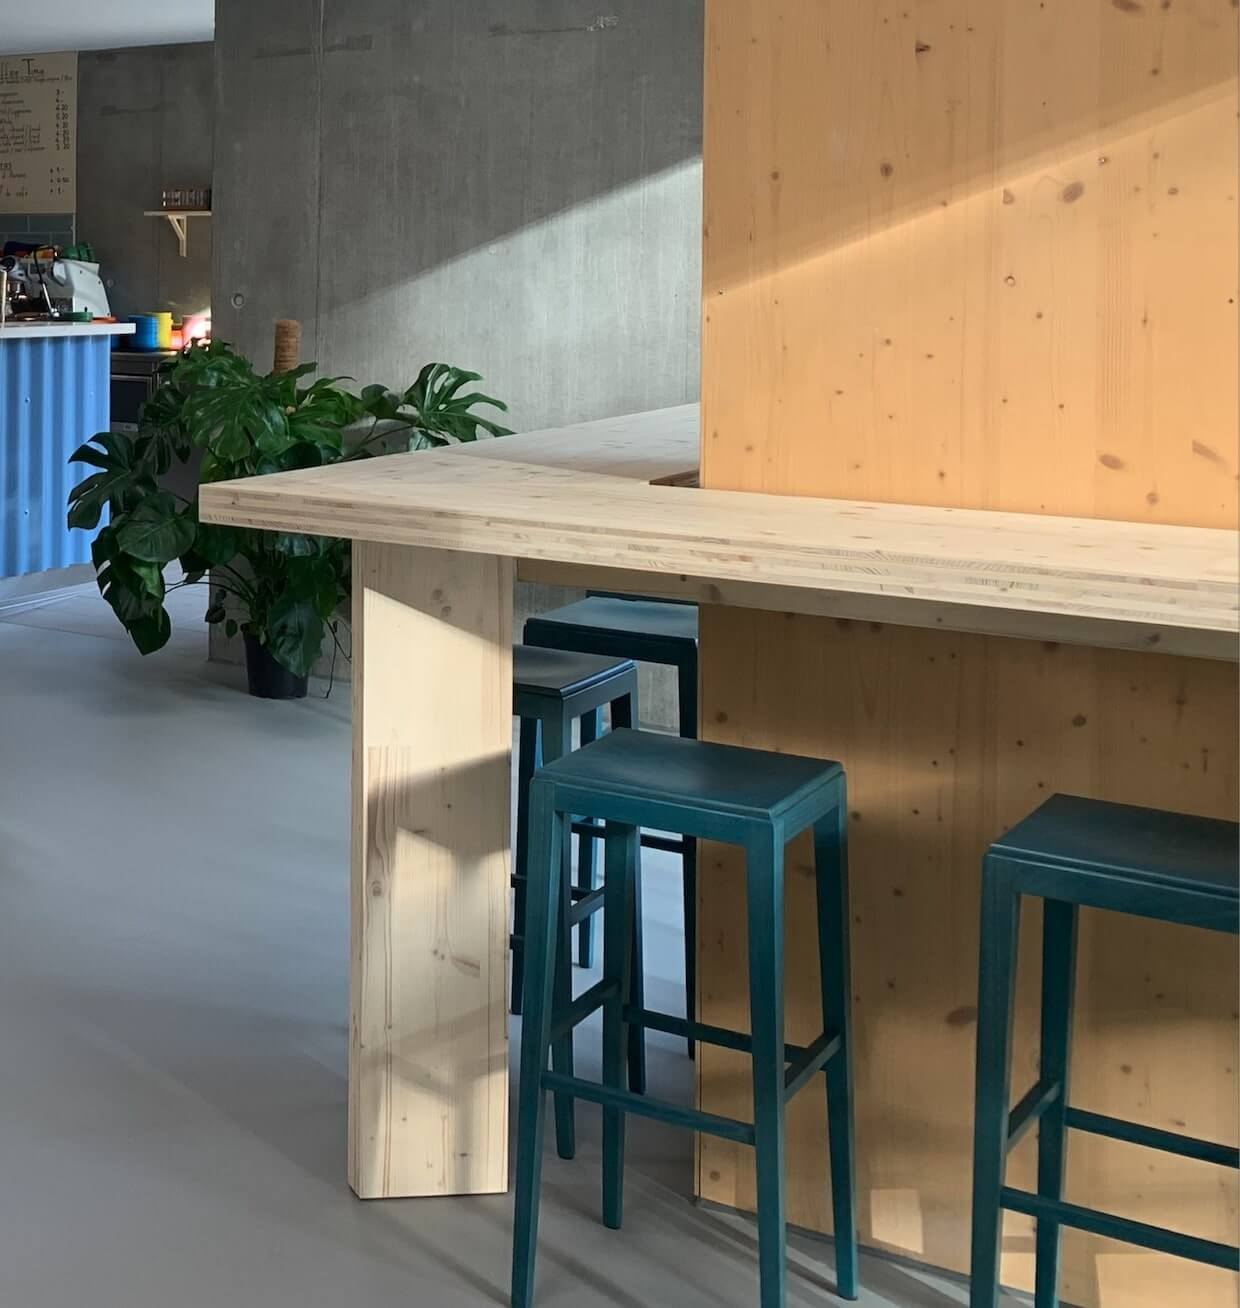 the wood counter has a design which integrates the architecture of the restaurant